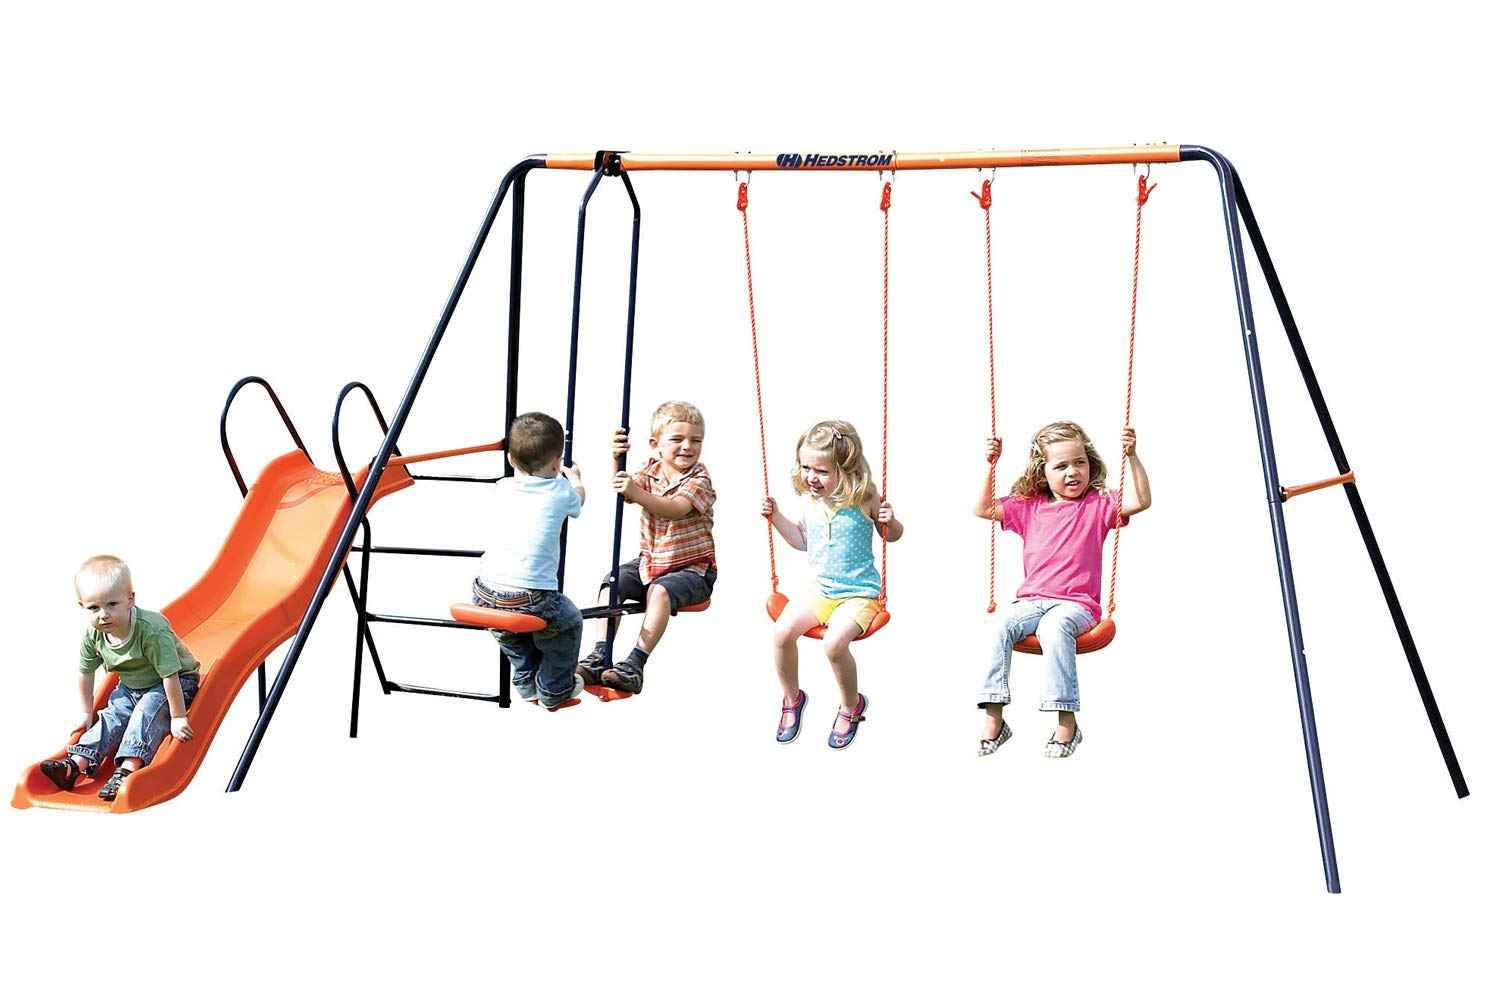 Childrens Hedstrom Double Swing Glider & Wavy Chute Slide Outdoor Multiplay Set MV Sports + Leisure